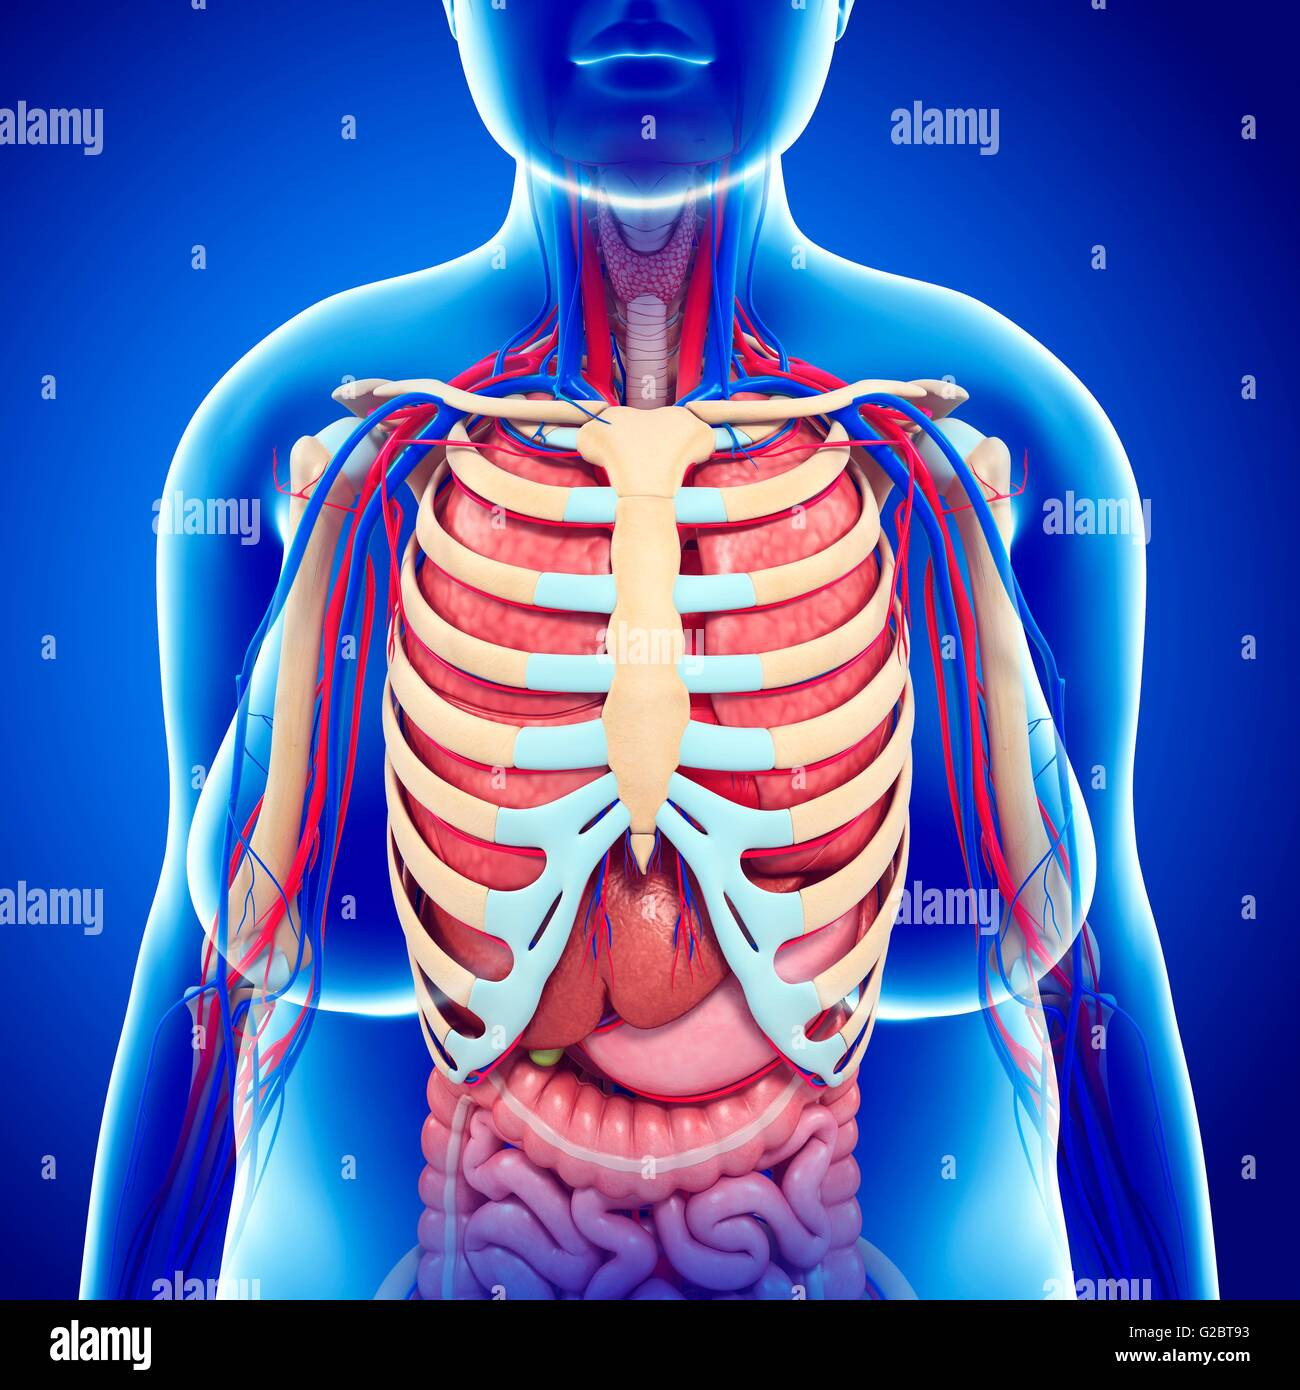 Human ribcage and internal organs illustration stock photo human ribcage and internal organs illustration ccuart Image collections